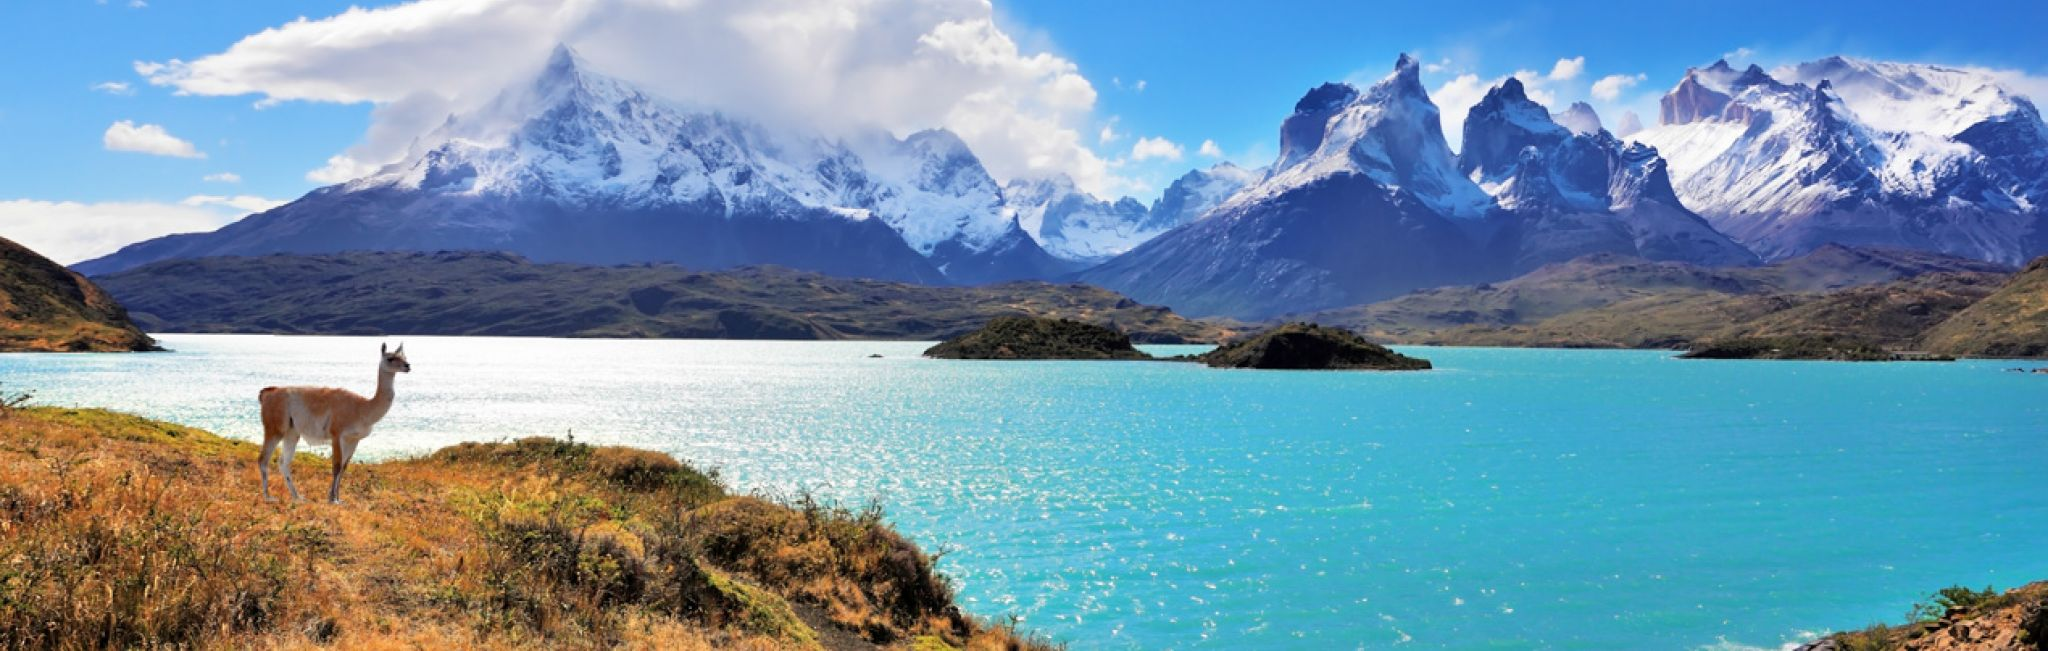 Lake Pehoe at Torres del Paine National Park in Chile.